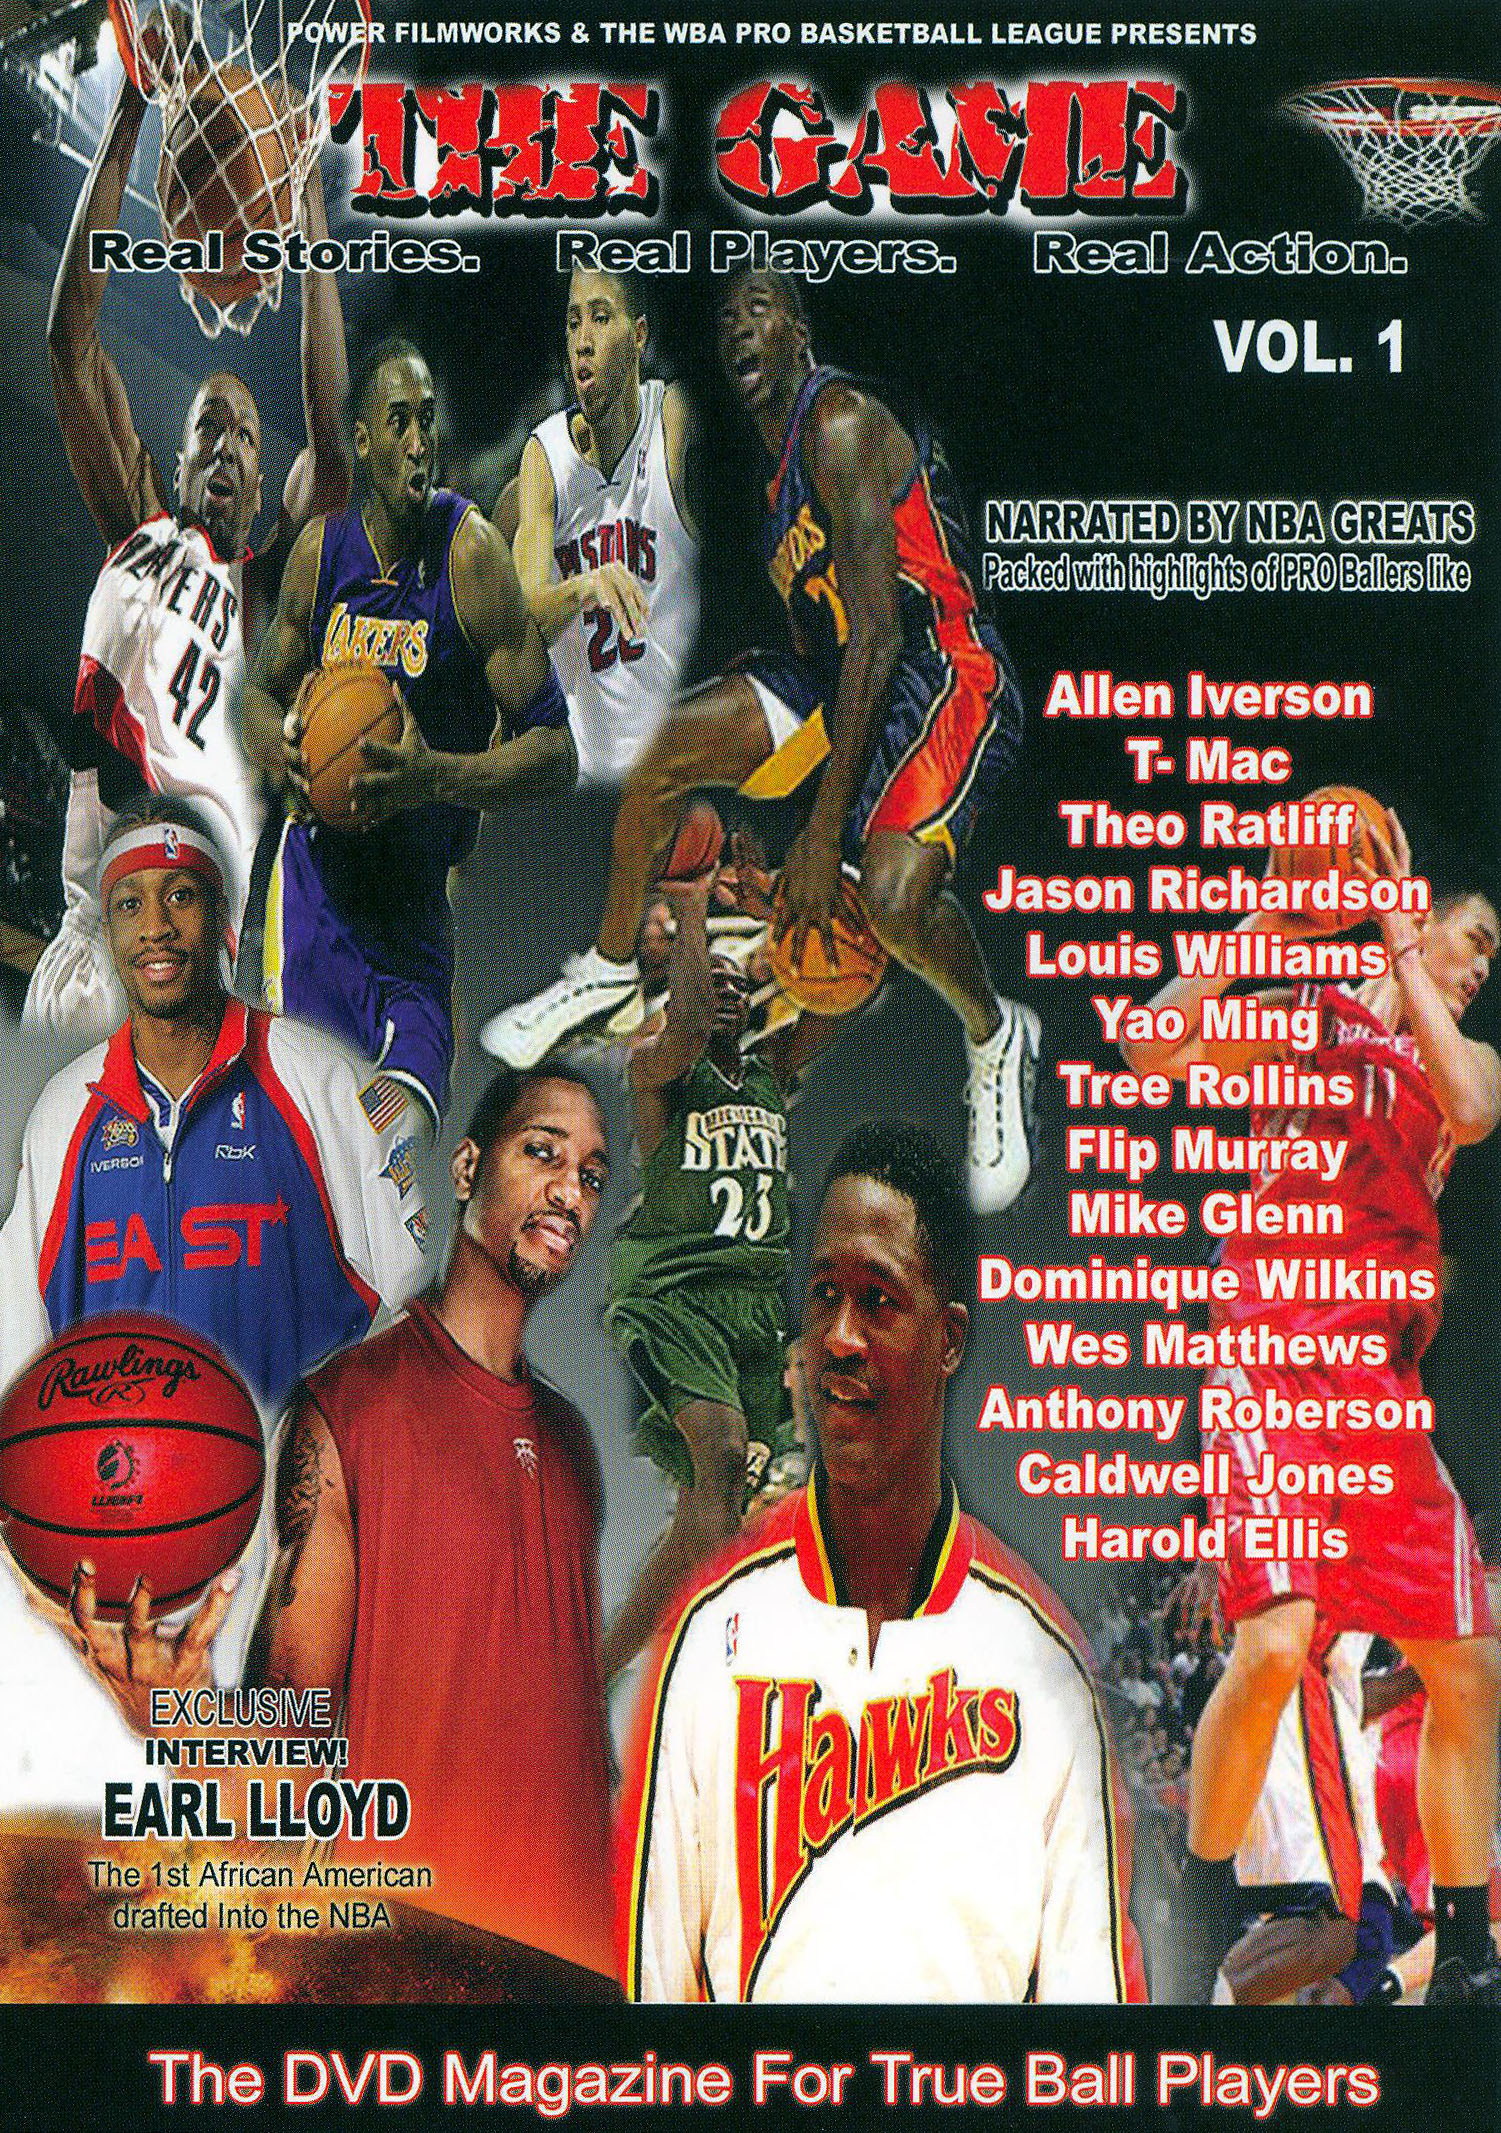 The Game, Vol. 1